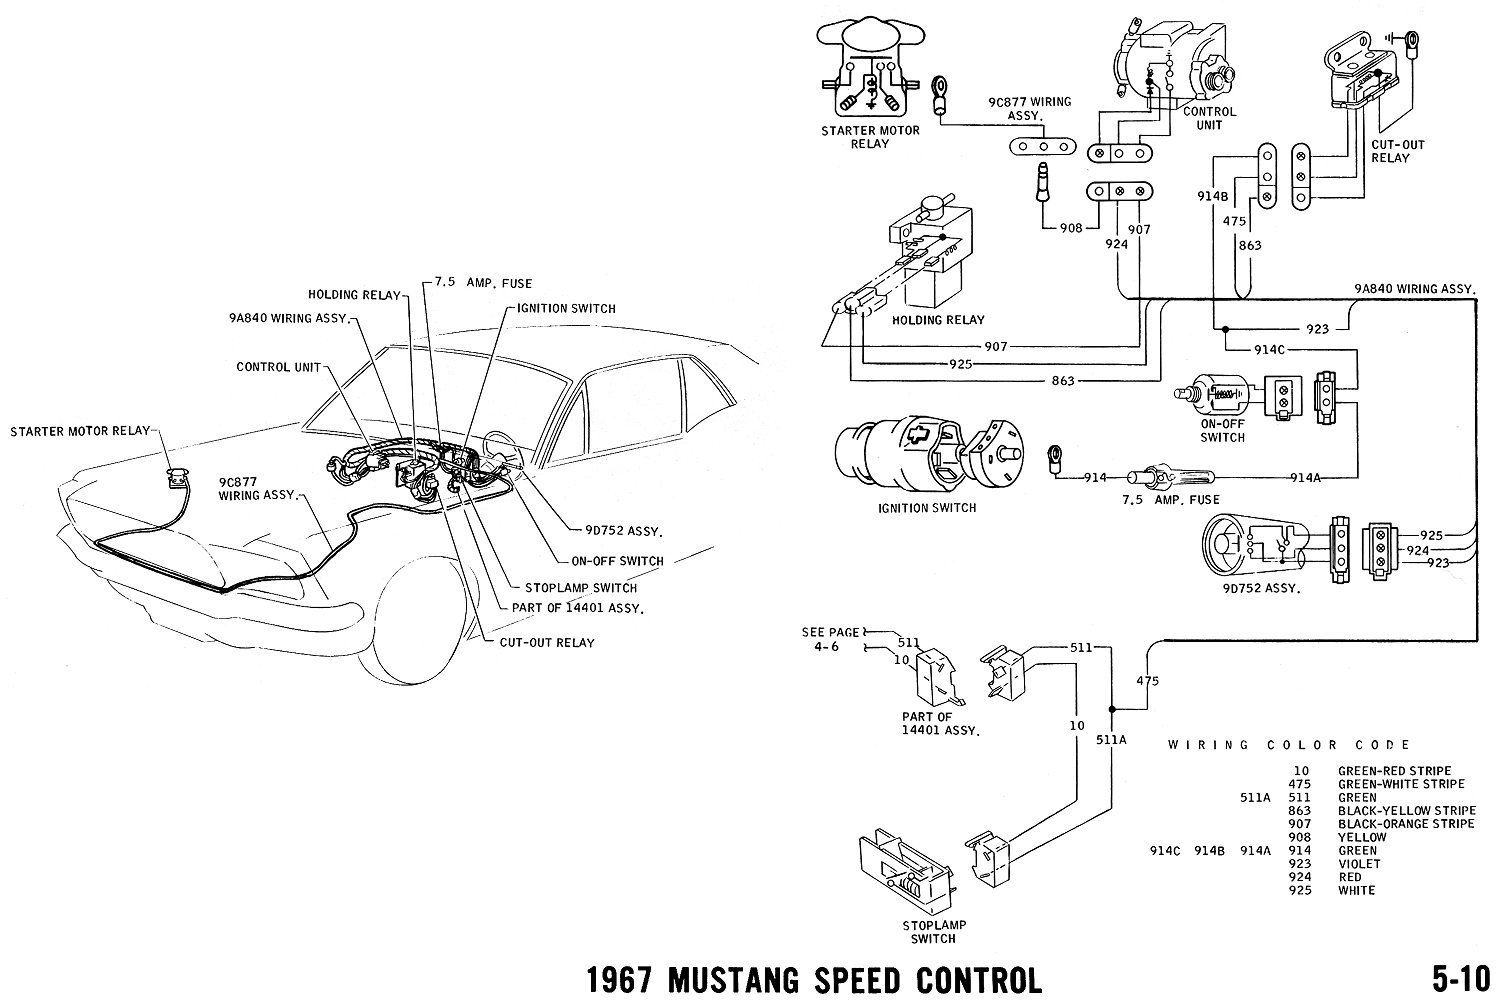 1992 Honda Accord Starter Wiring Diagram 1967 Mustang And Vacuum Diagrams Average Joe Restoration Pictorial Schematic